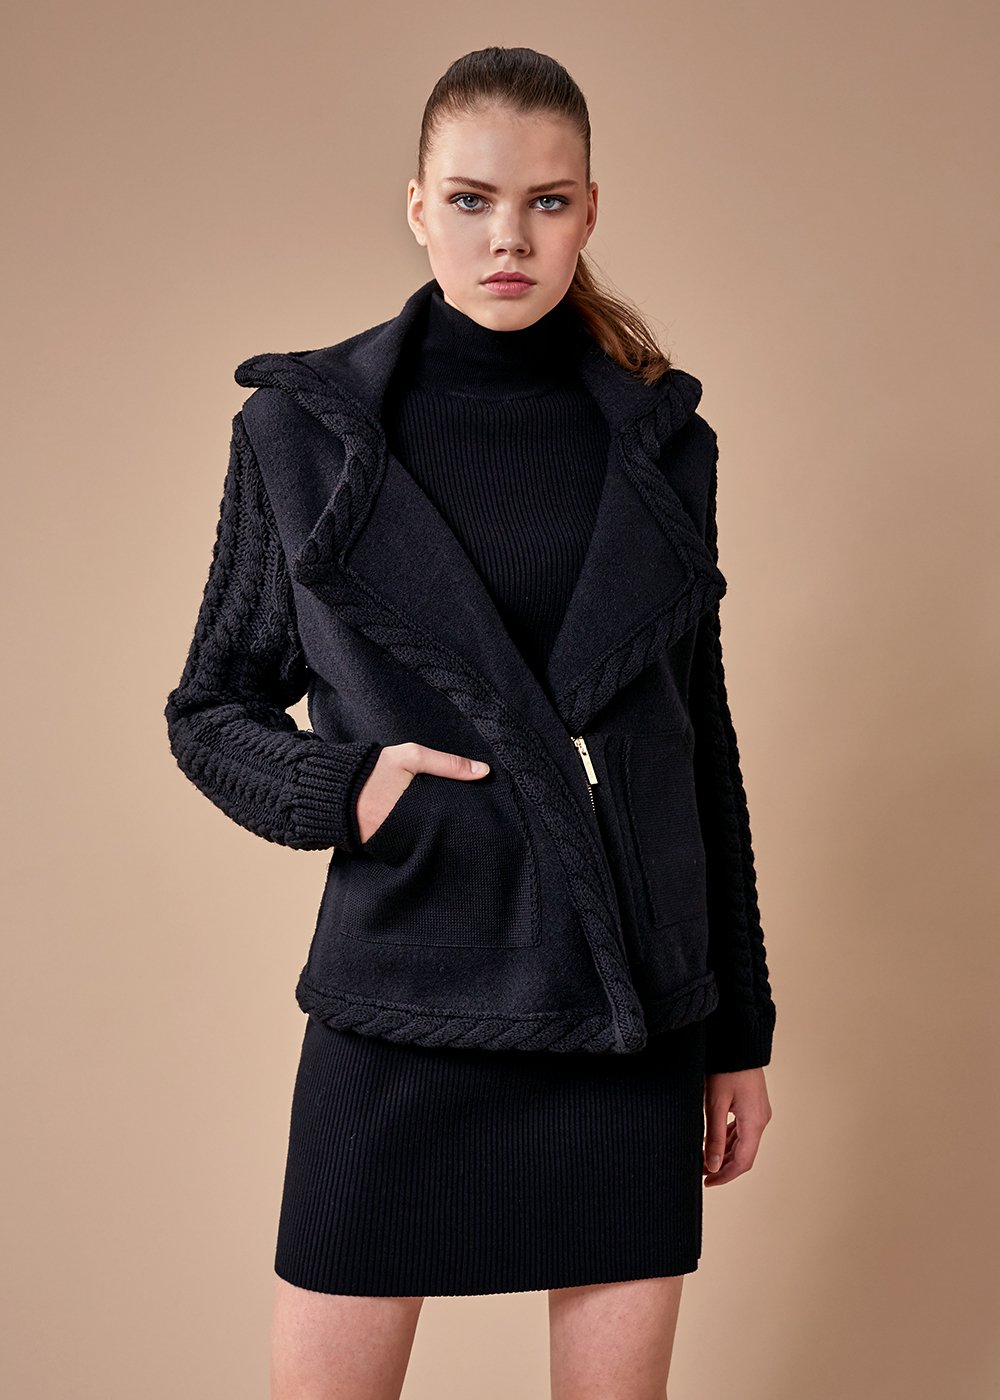 ZIPPED NAVY WOOL KNIT COAT